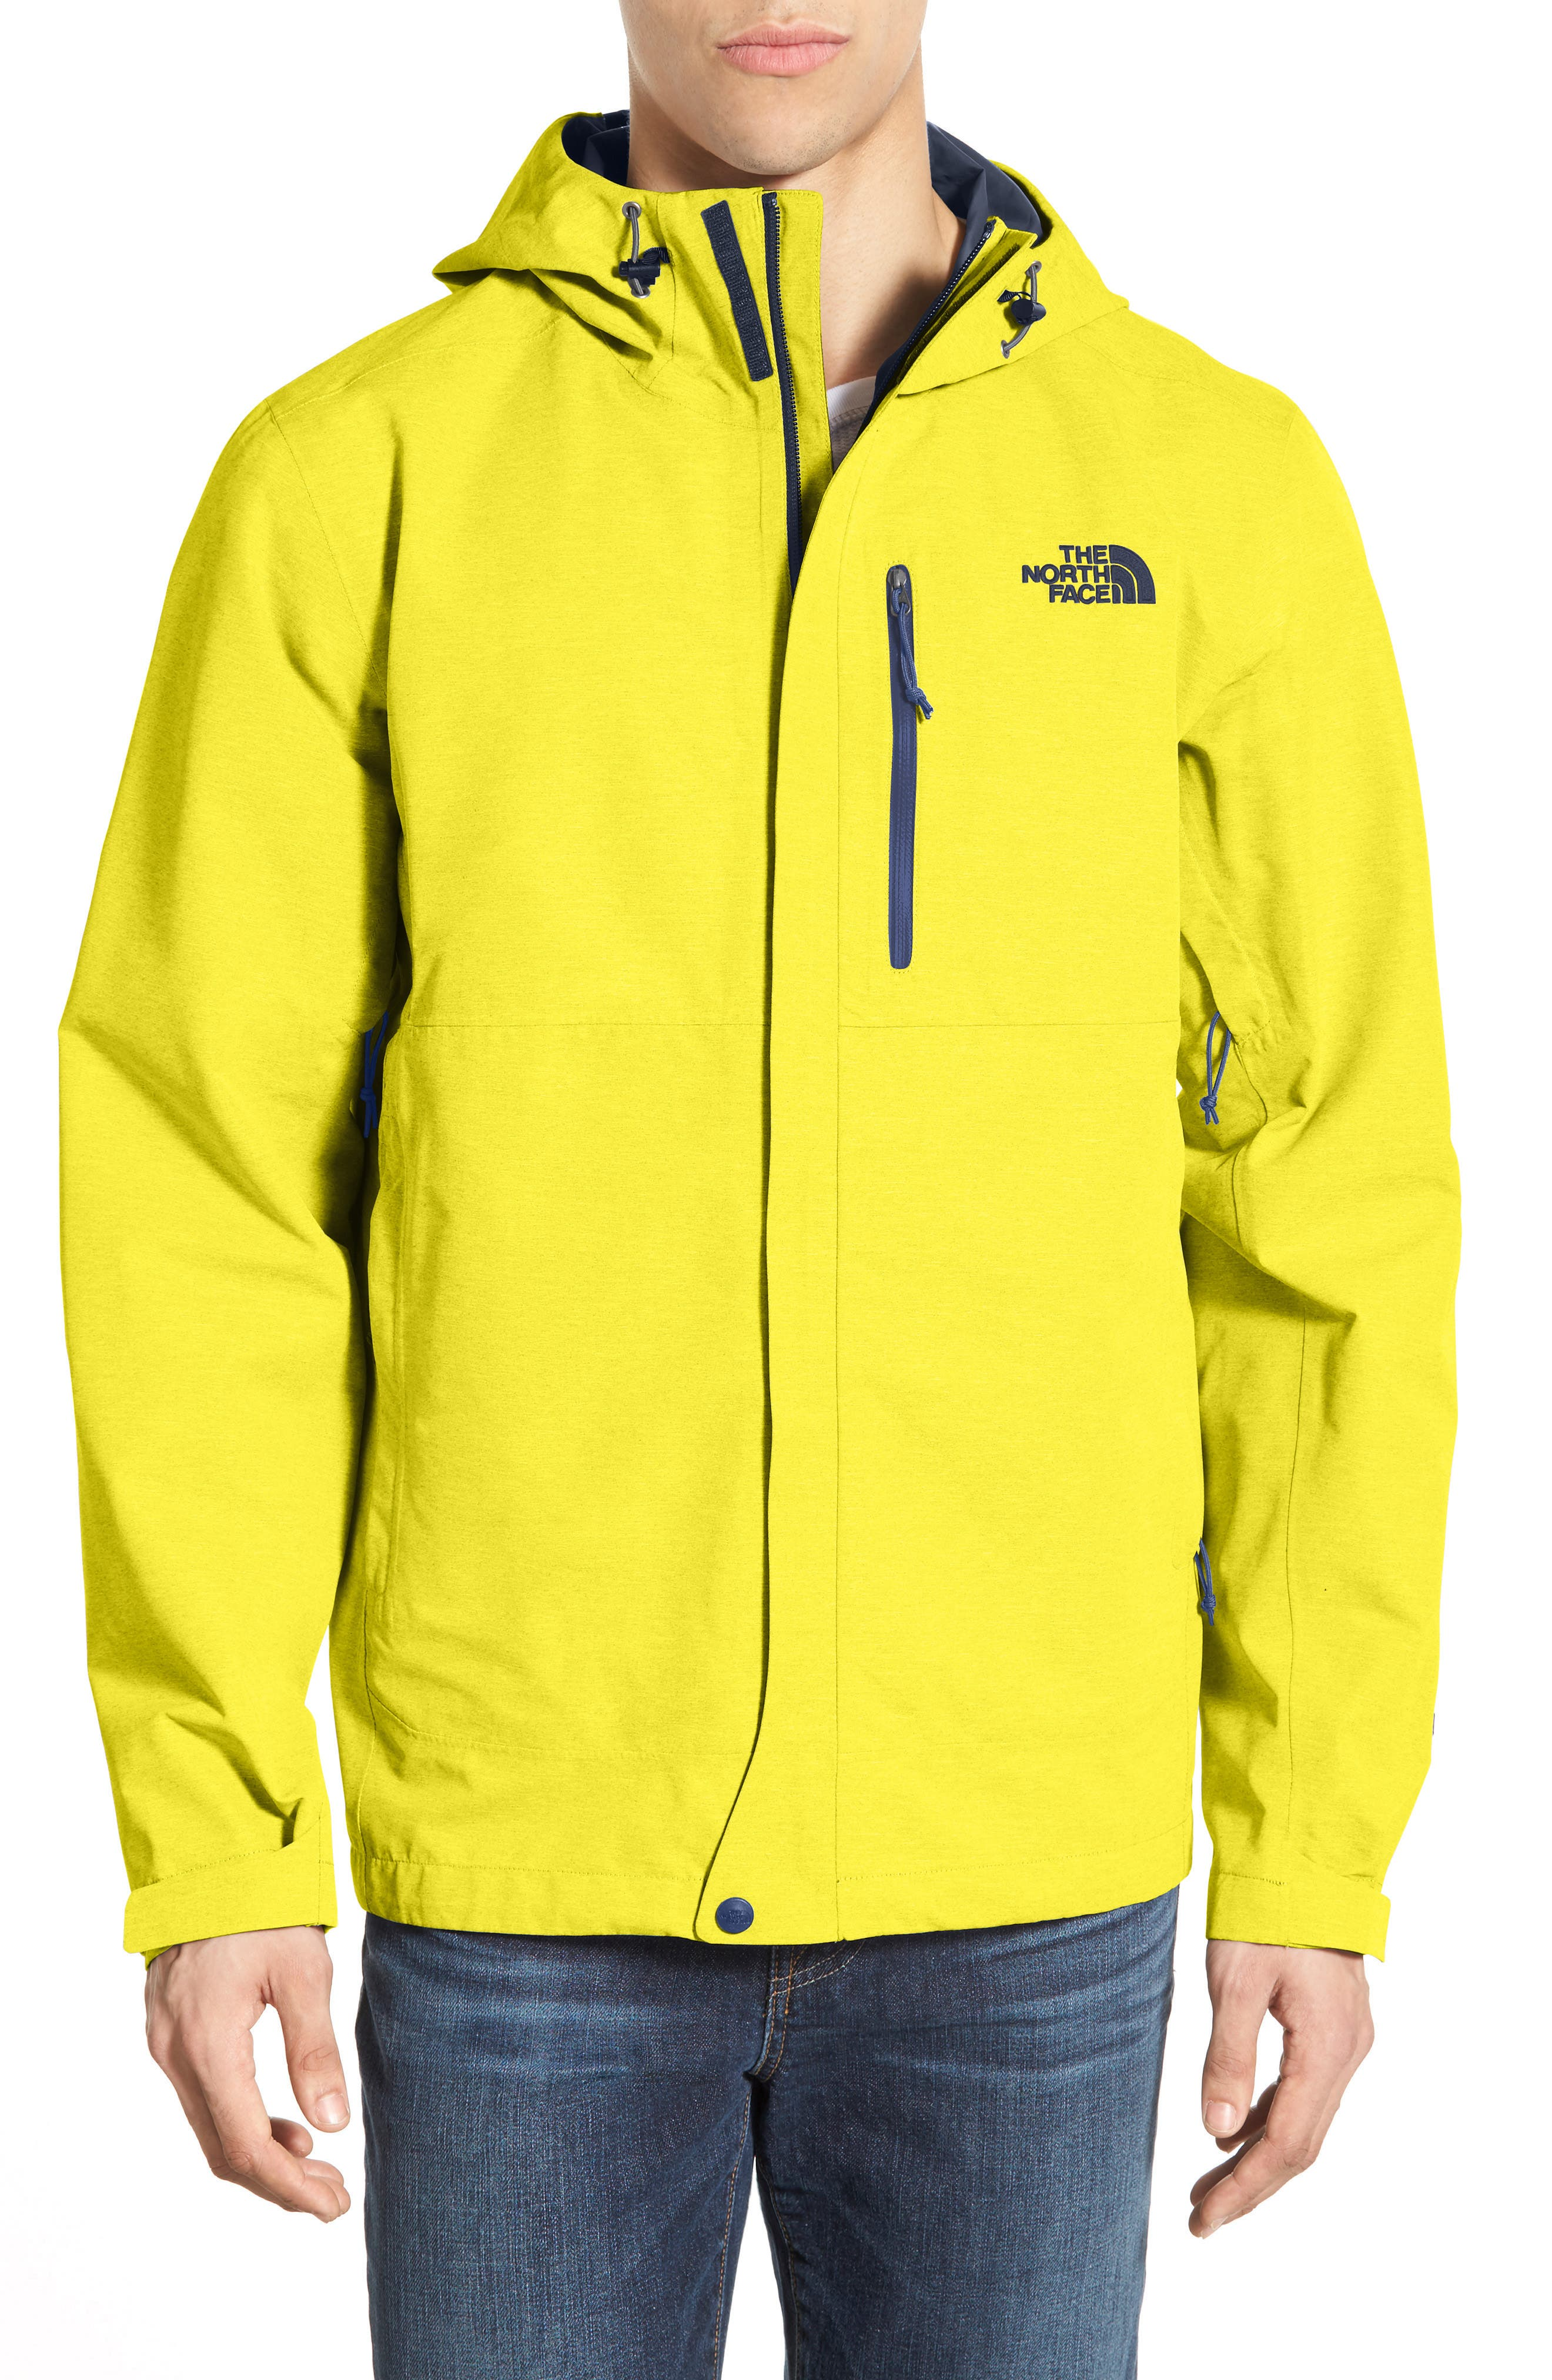 The North Face 'Dryzzle' Gore-Tex® PacLite® Hooded Jacket